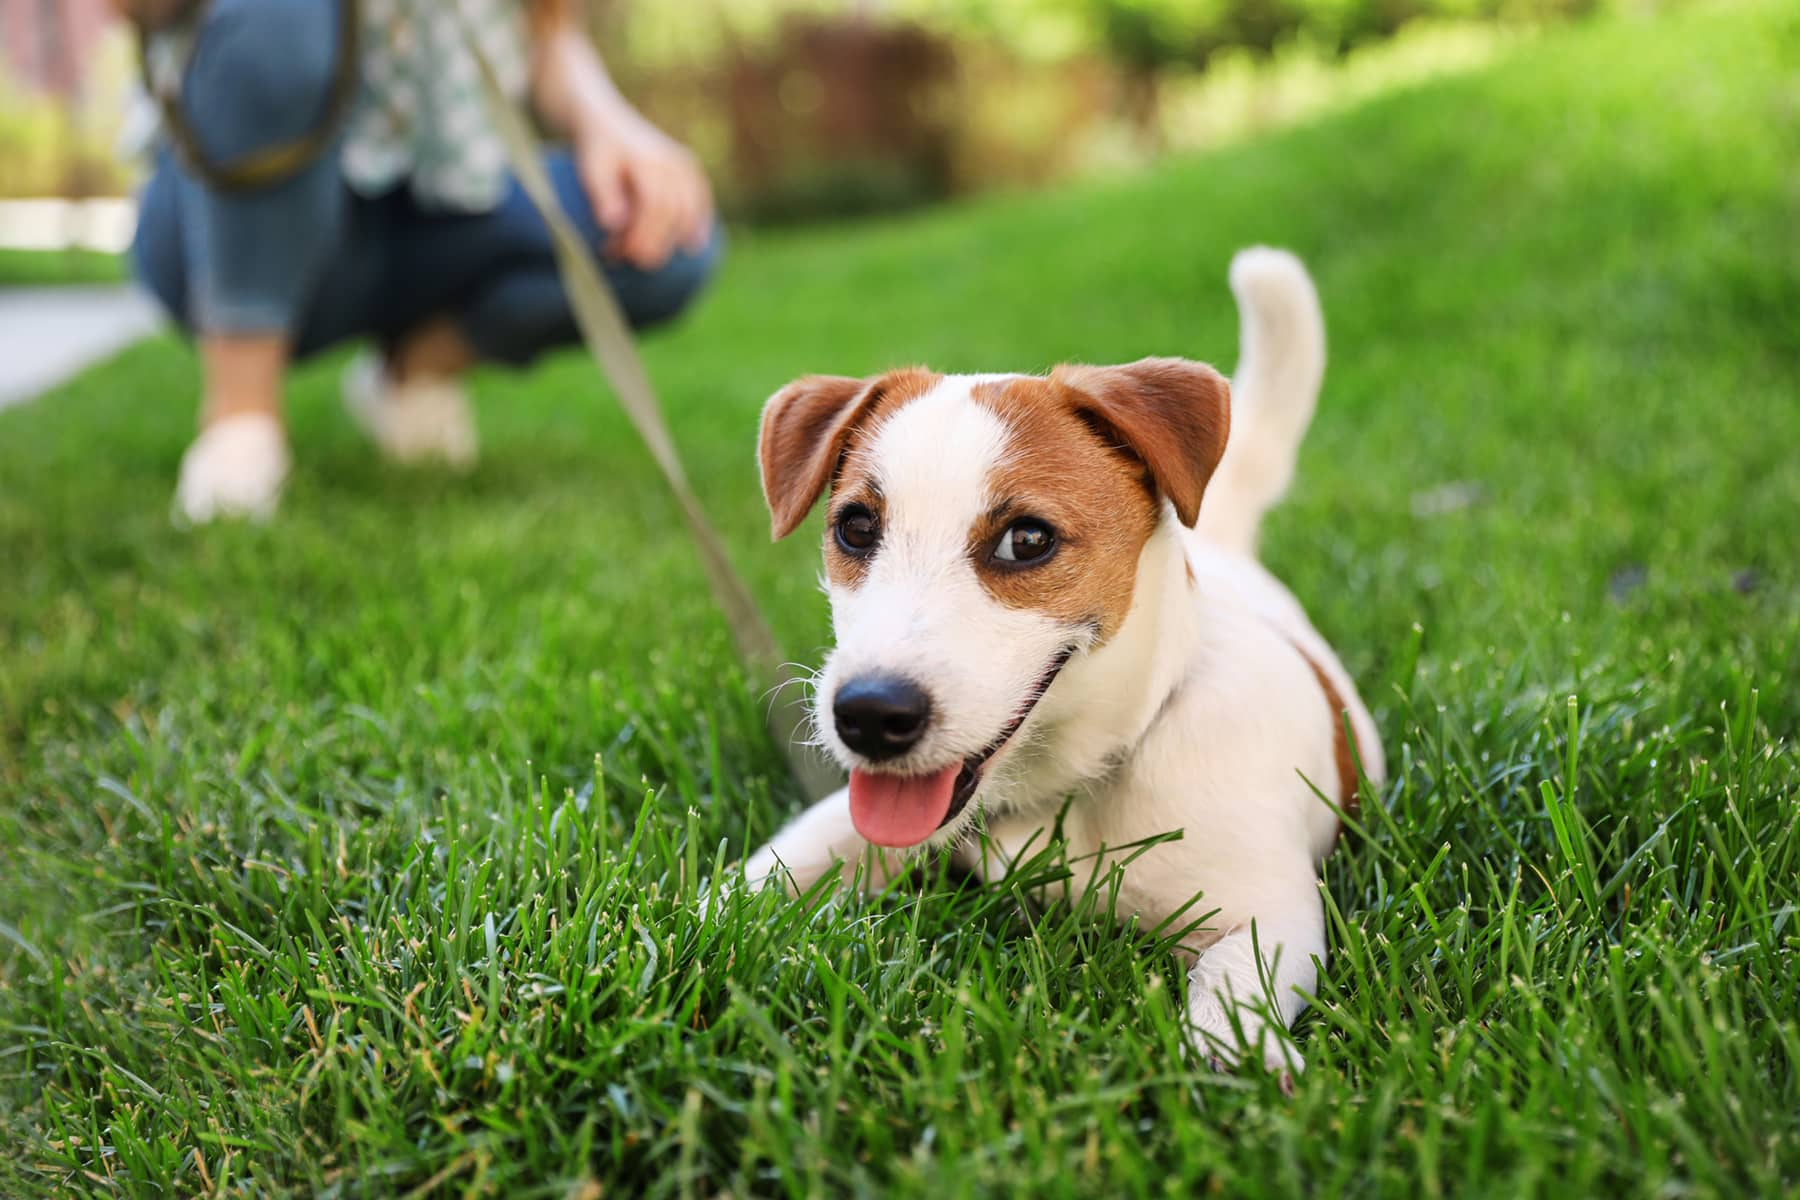 This is the cover photo for our Best Grass for Dogs article. It features a white and grown puppy dog laying on green grass.